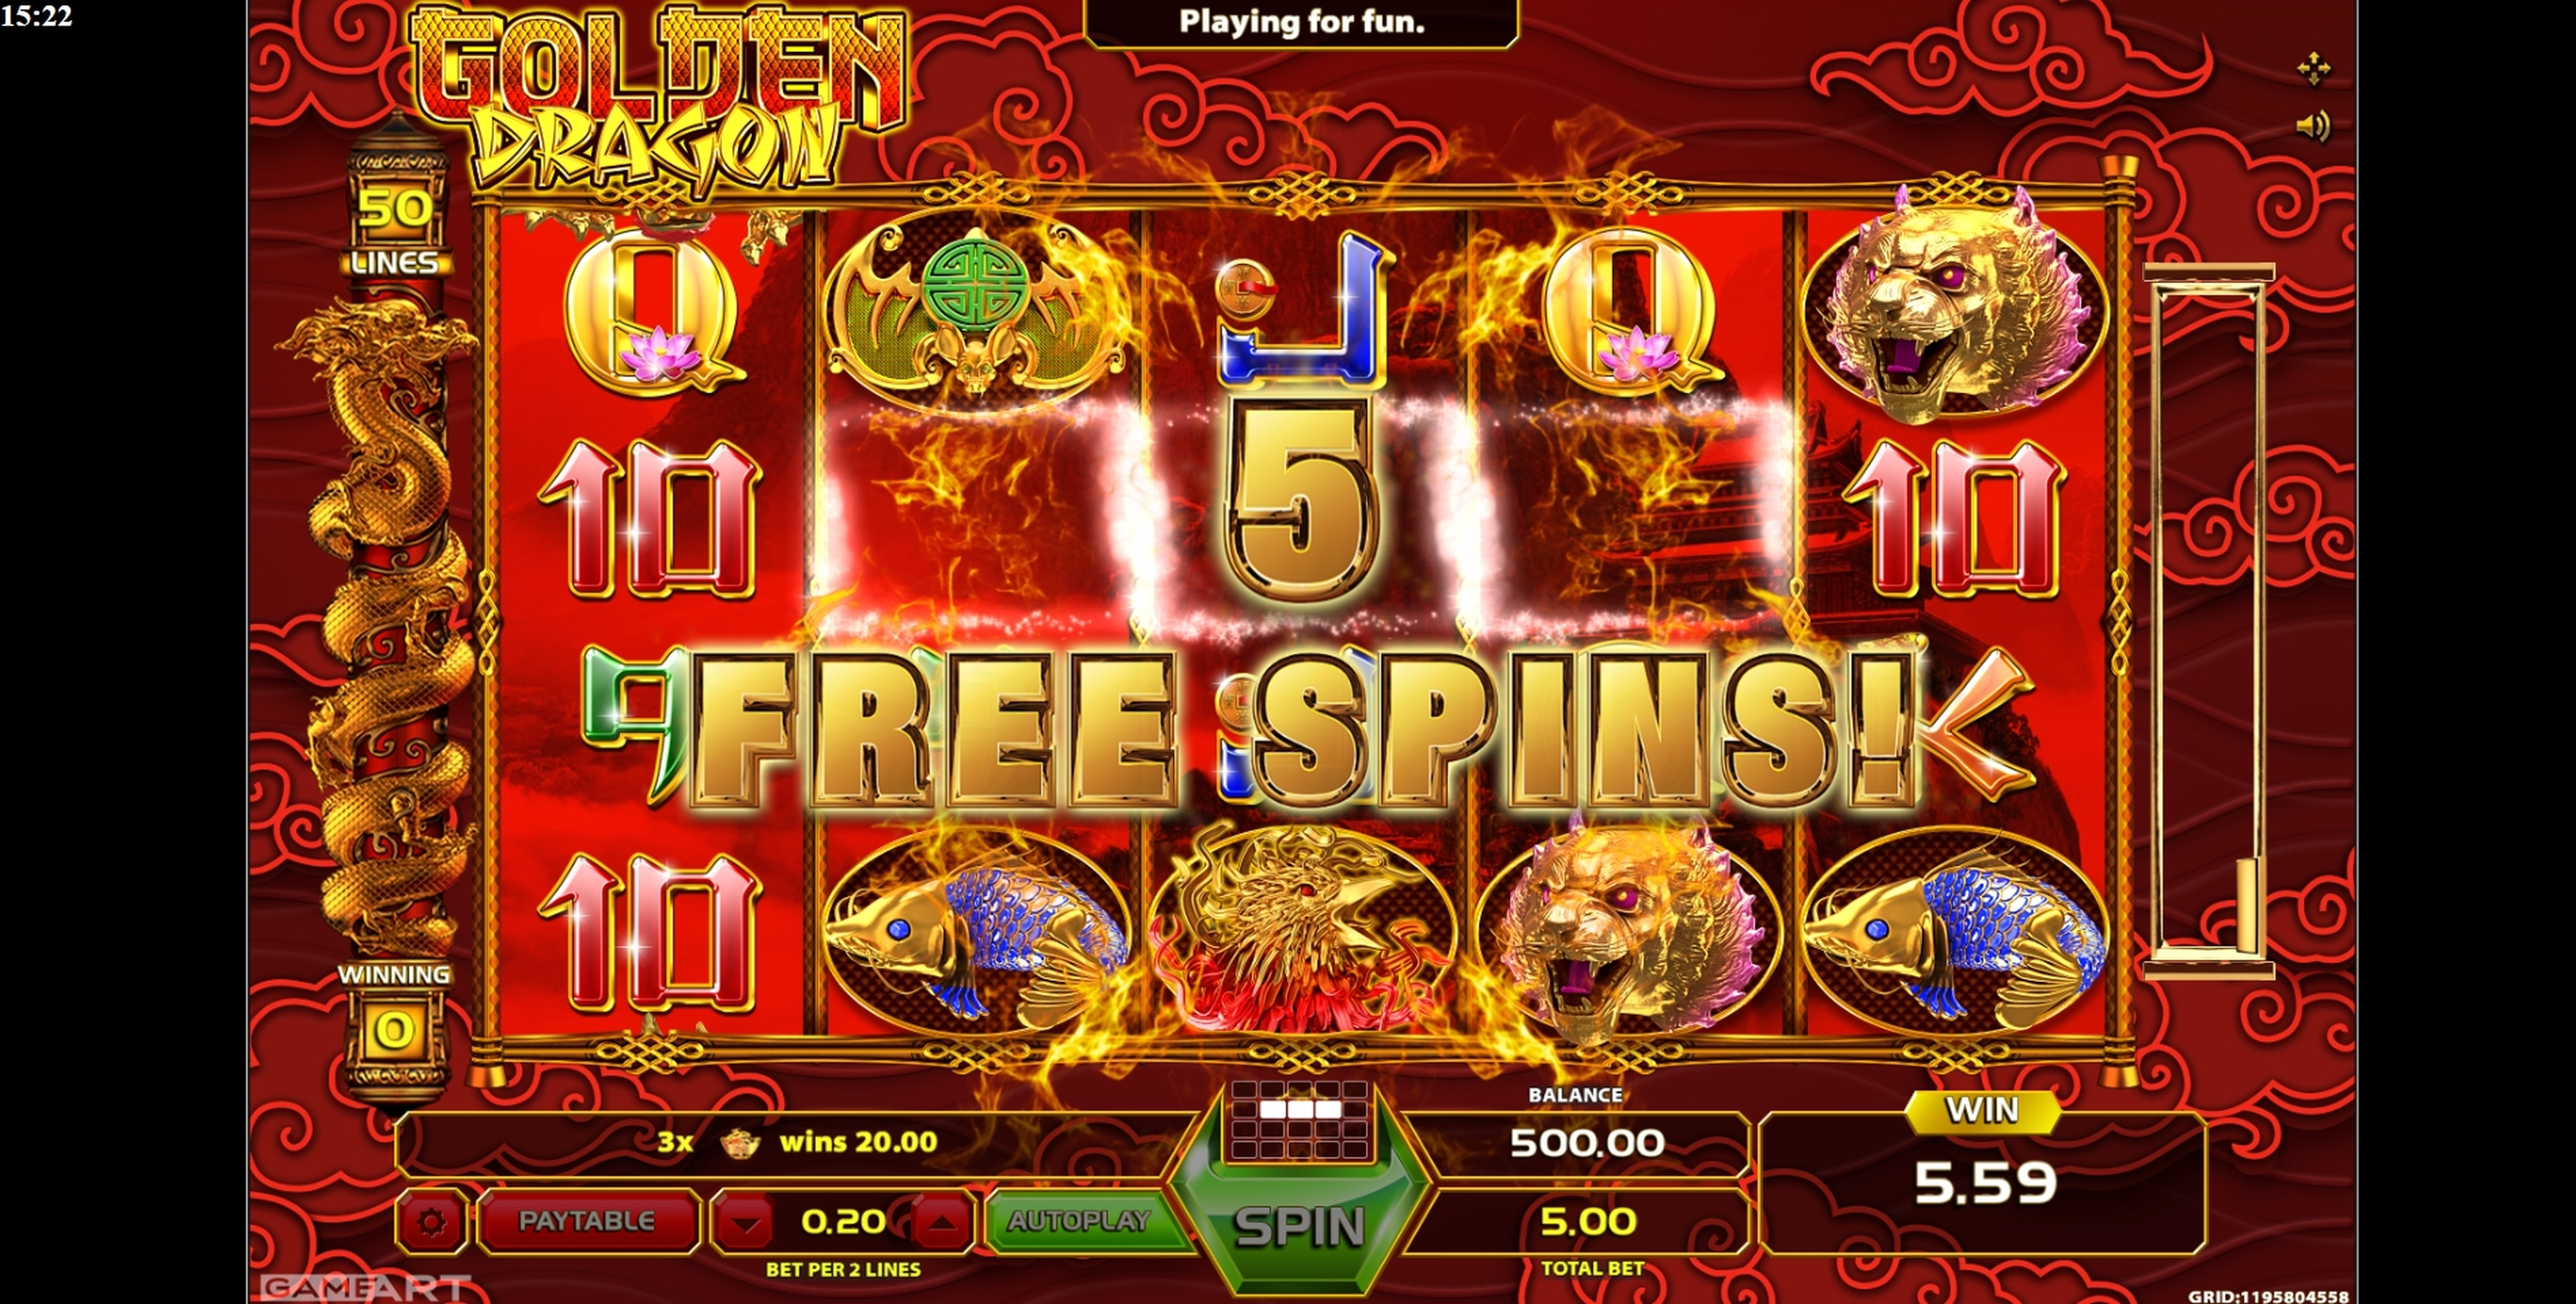 Win Money in Golden Dragon (GameArt) Free Slot Game by GameArt